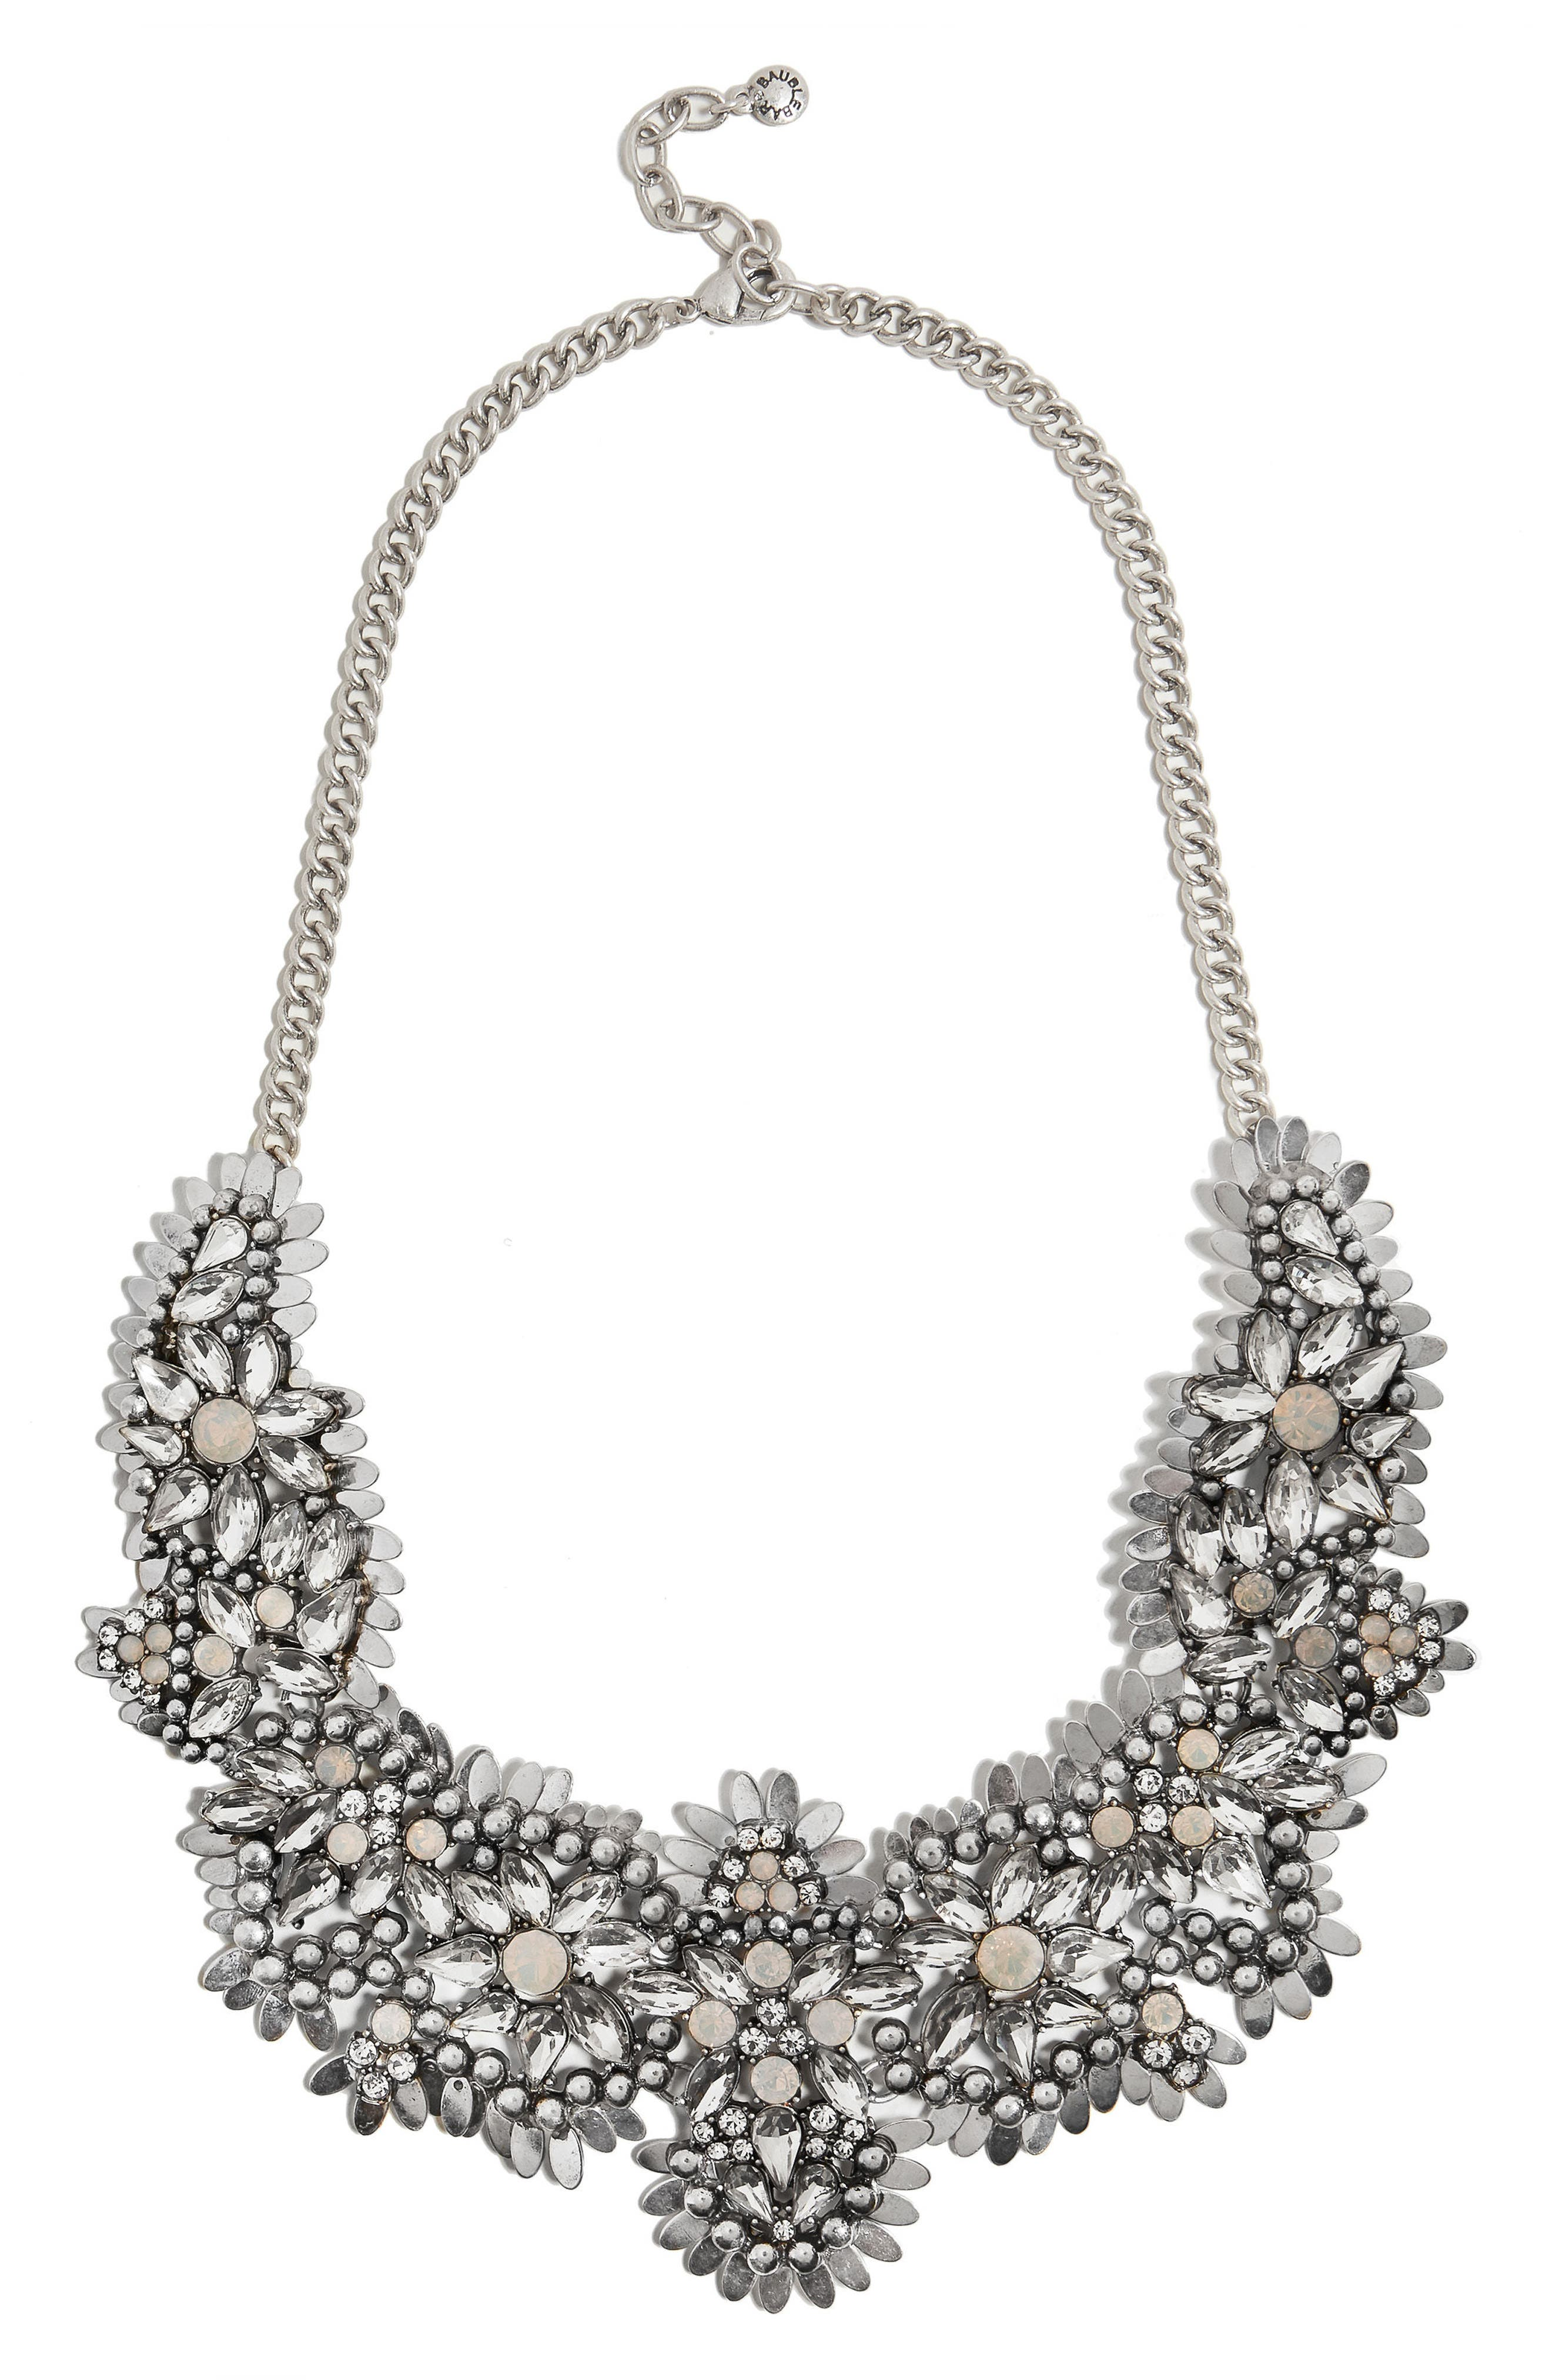 Alternate Image 1 Selected - BaubleBar Ice Queen Crystal Statement Necklace